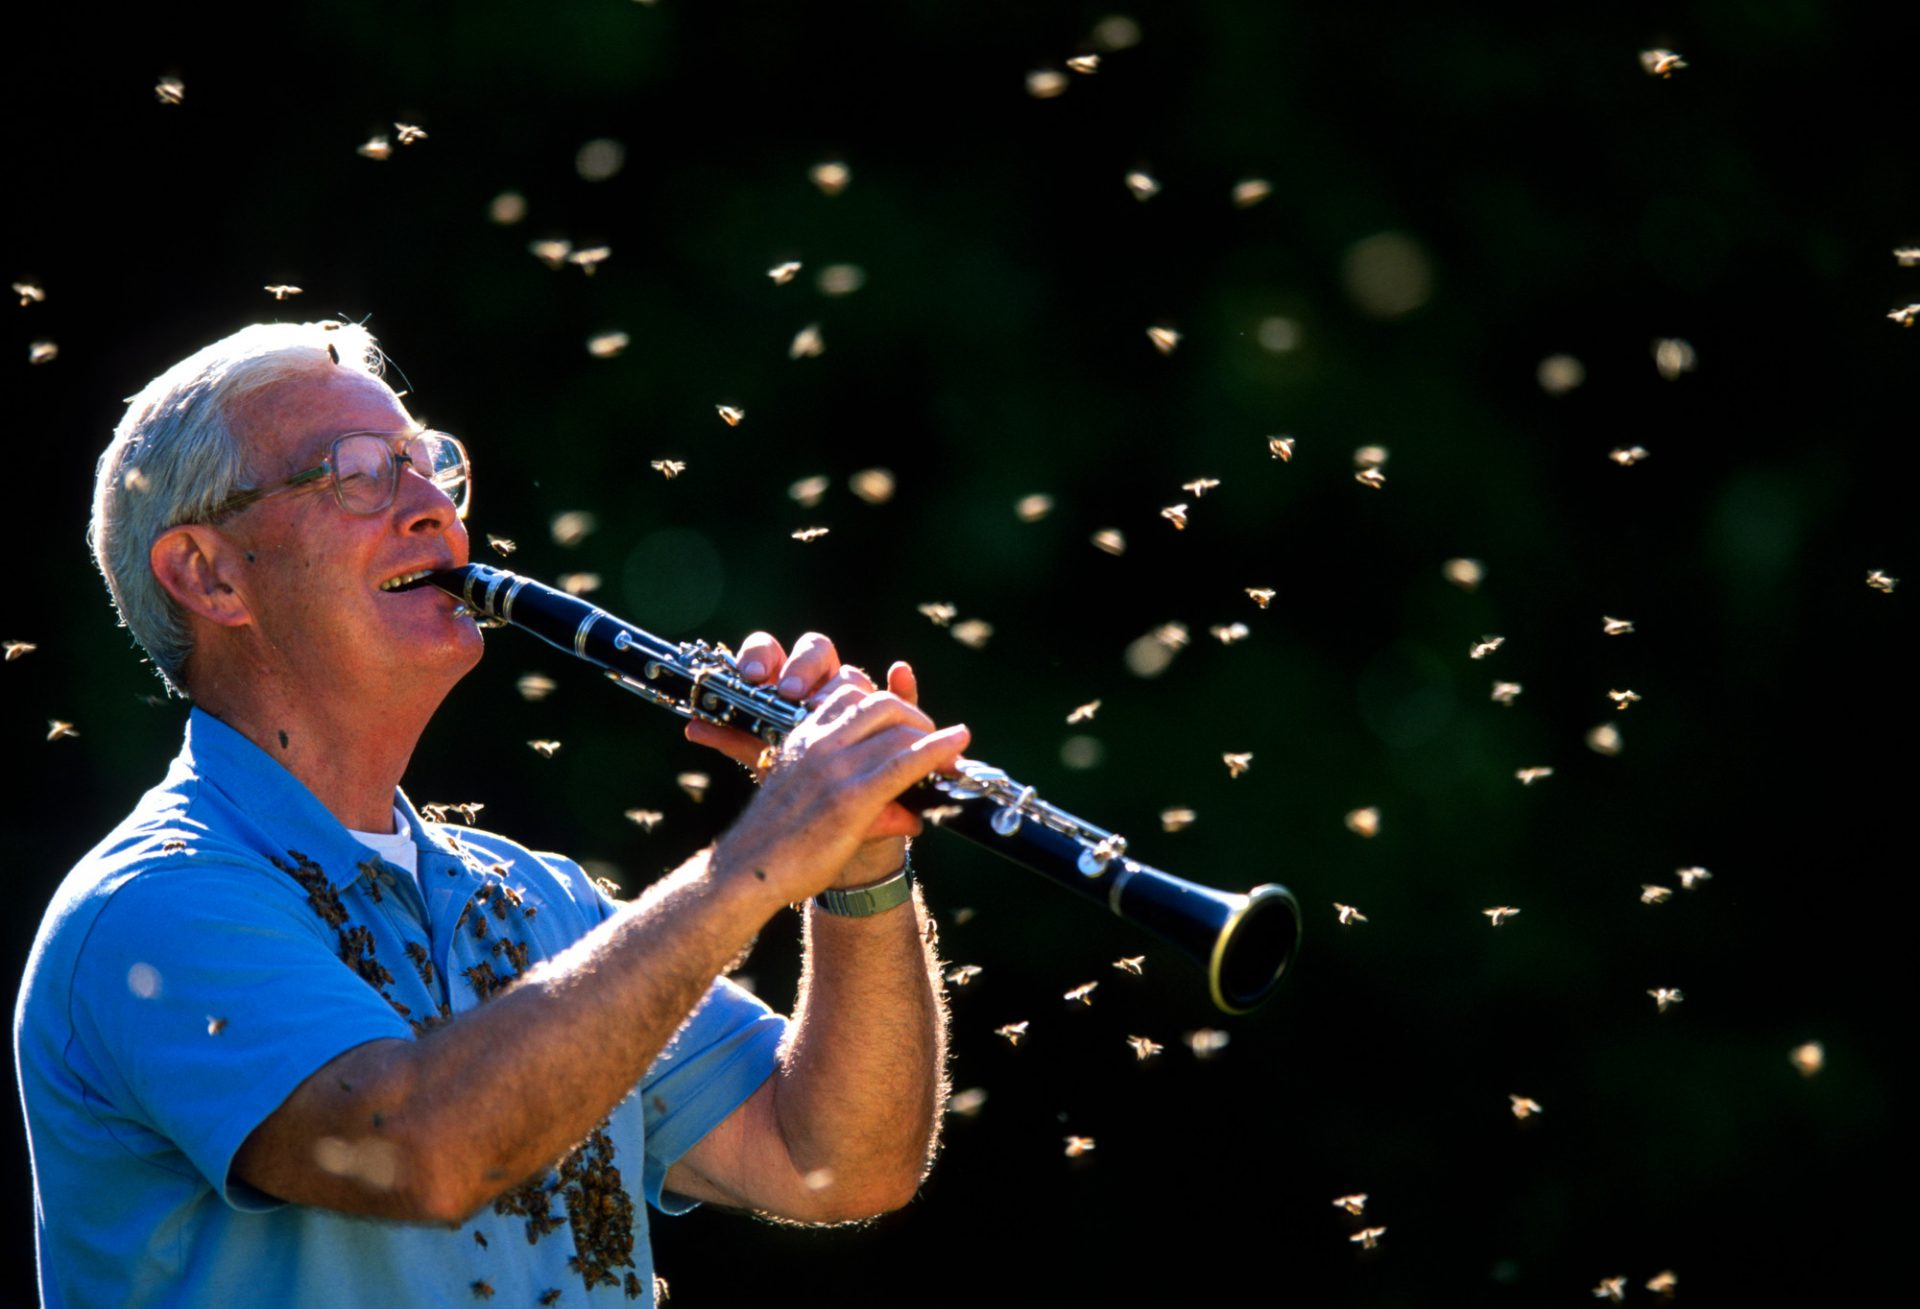 Photo: Dr. Norman Gary, an entomologist and bee wrangler, plays his clarinet while surrounded by some of his bees.